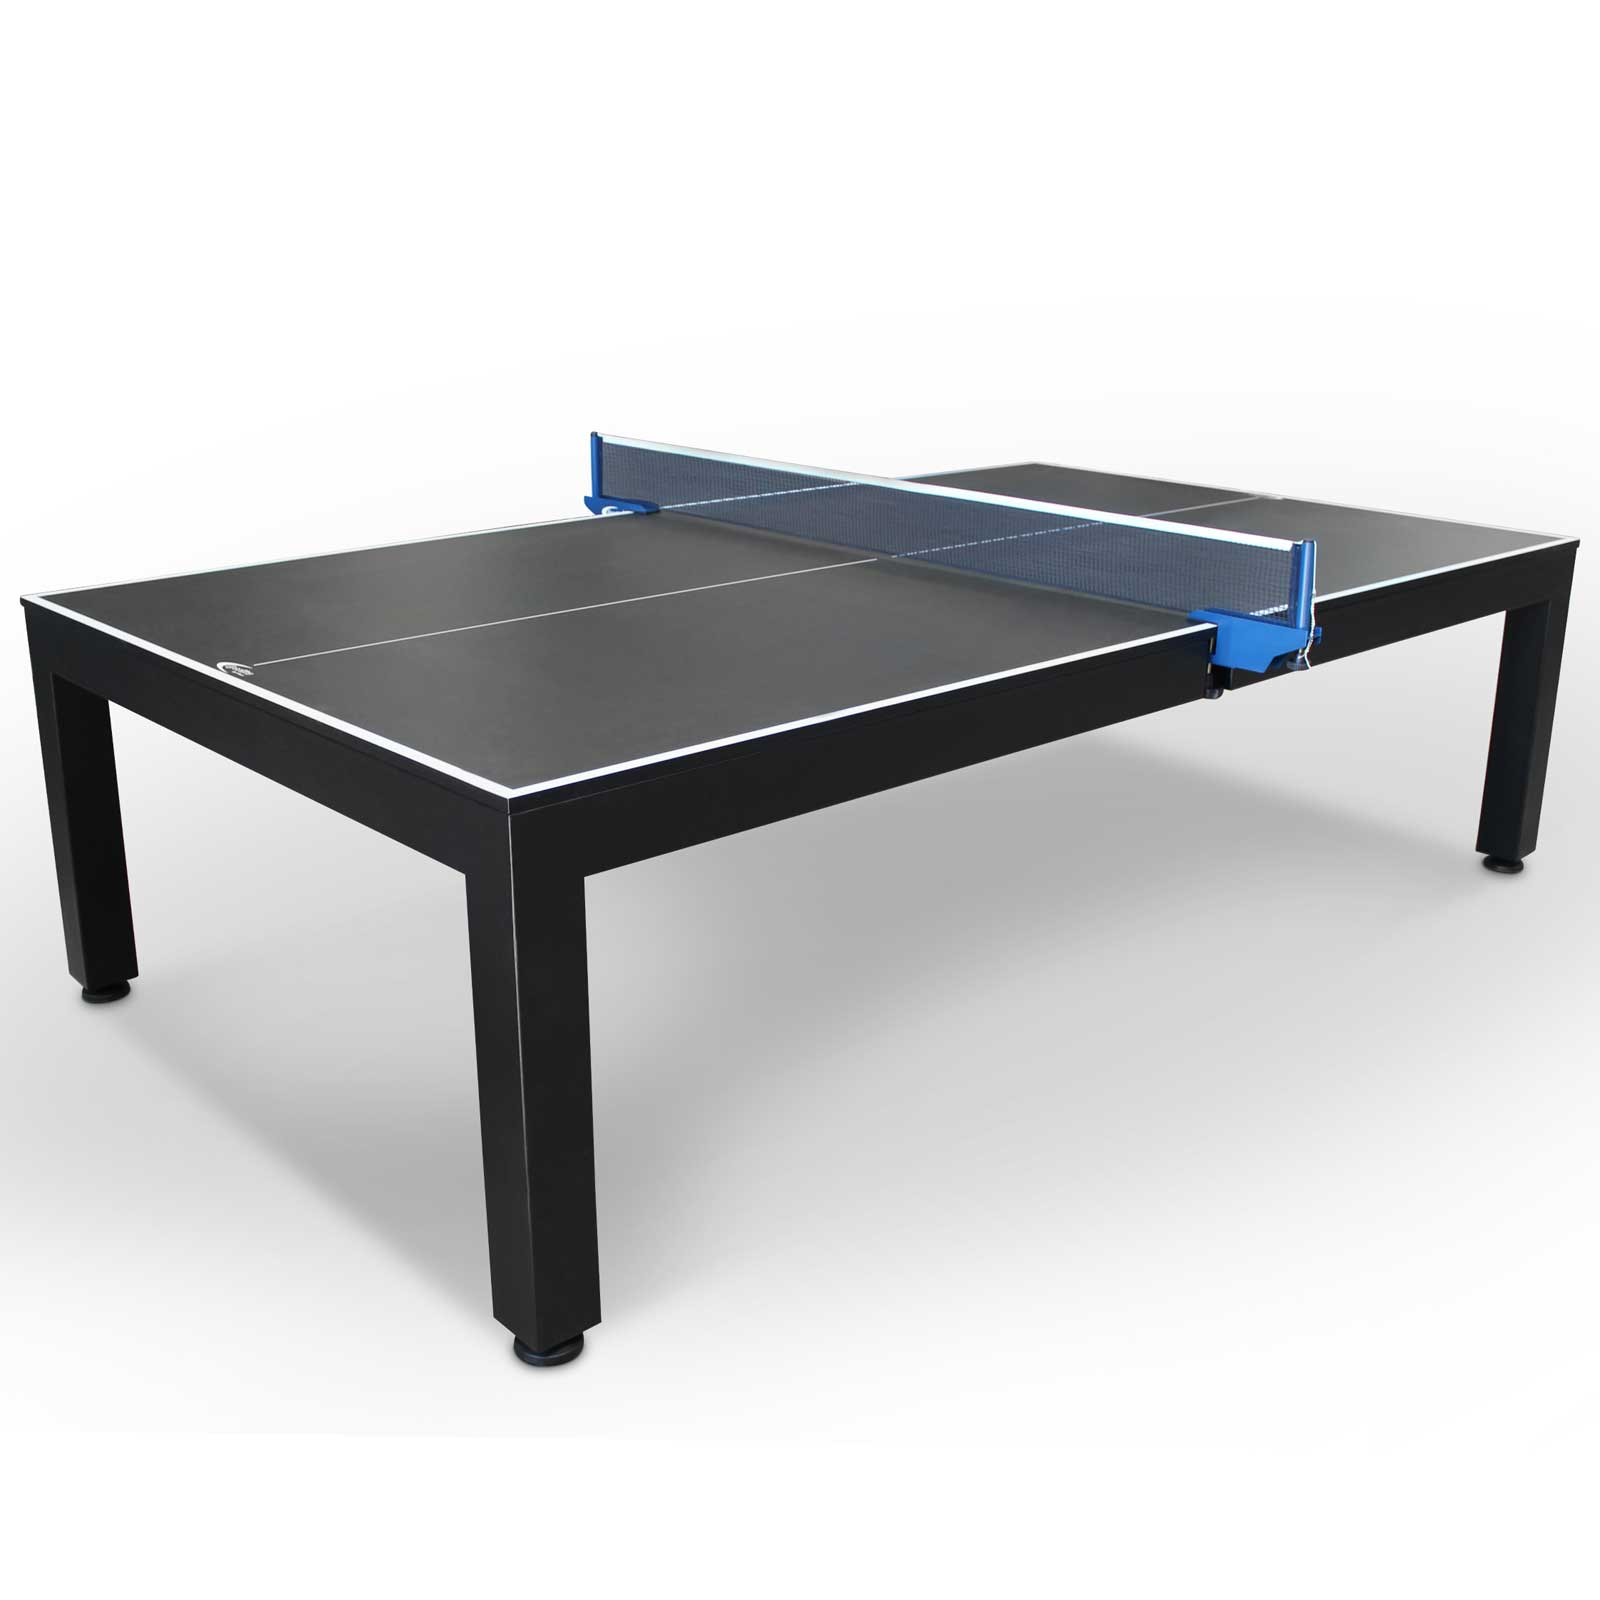 Challenger Dining Table Style Table Tennis Ping Pong Table